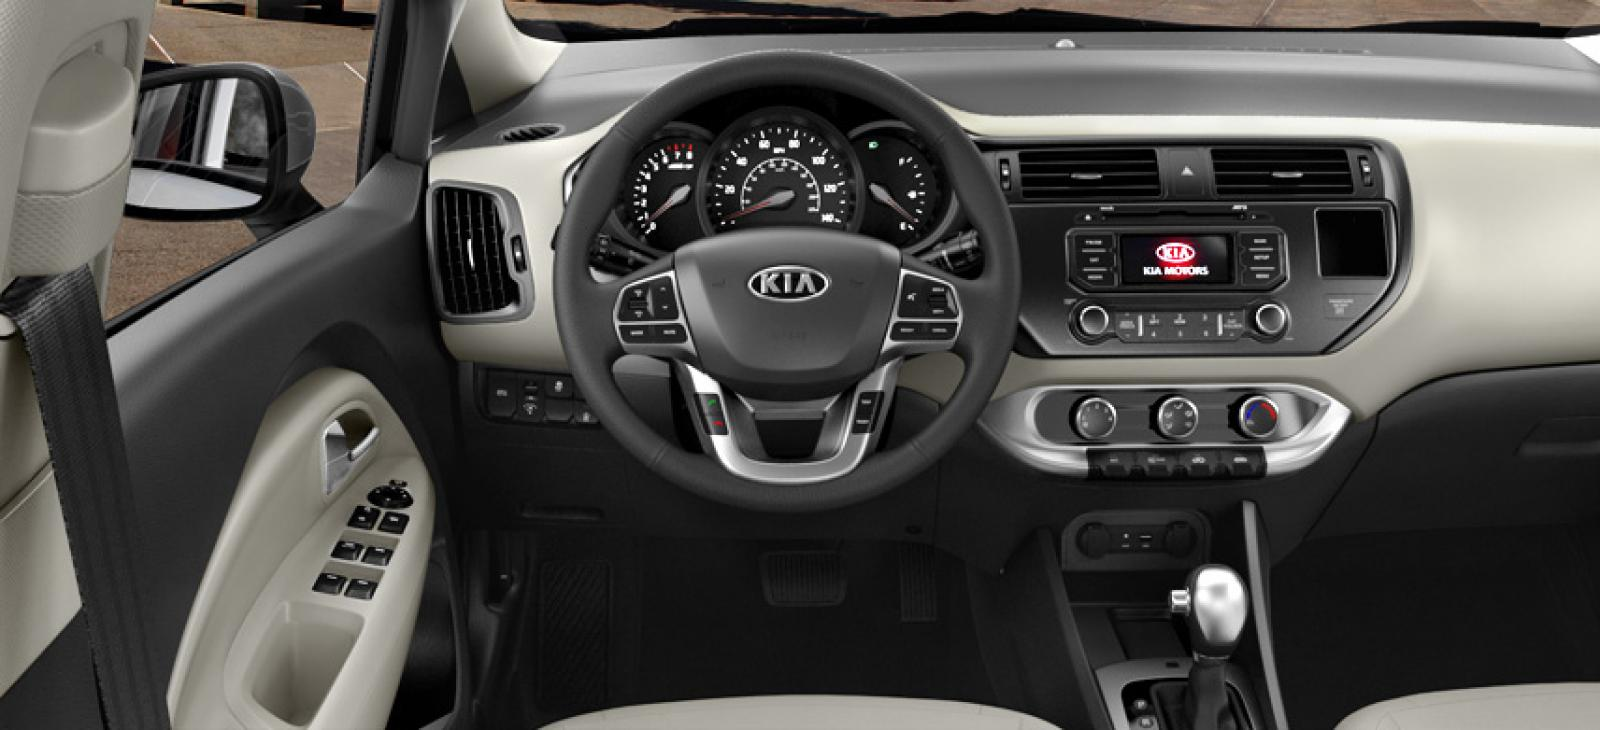 2014 Kia Rio - Information and photos - ZombieDrive